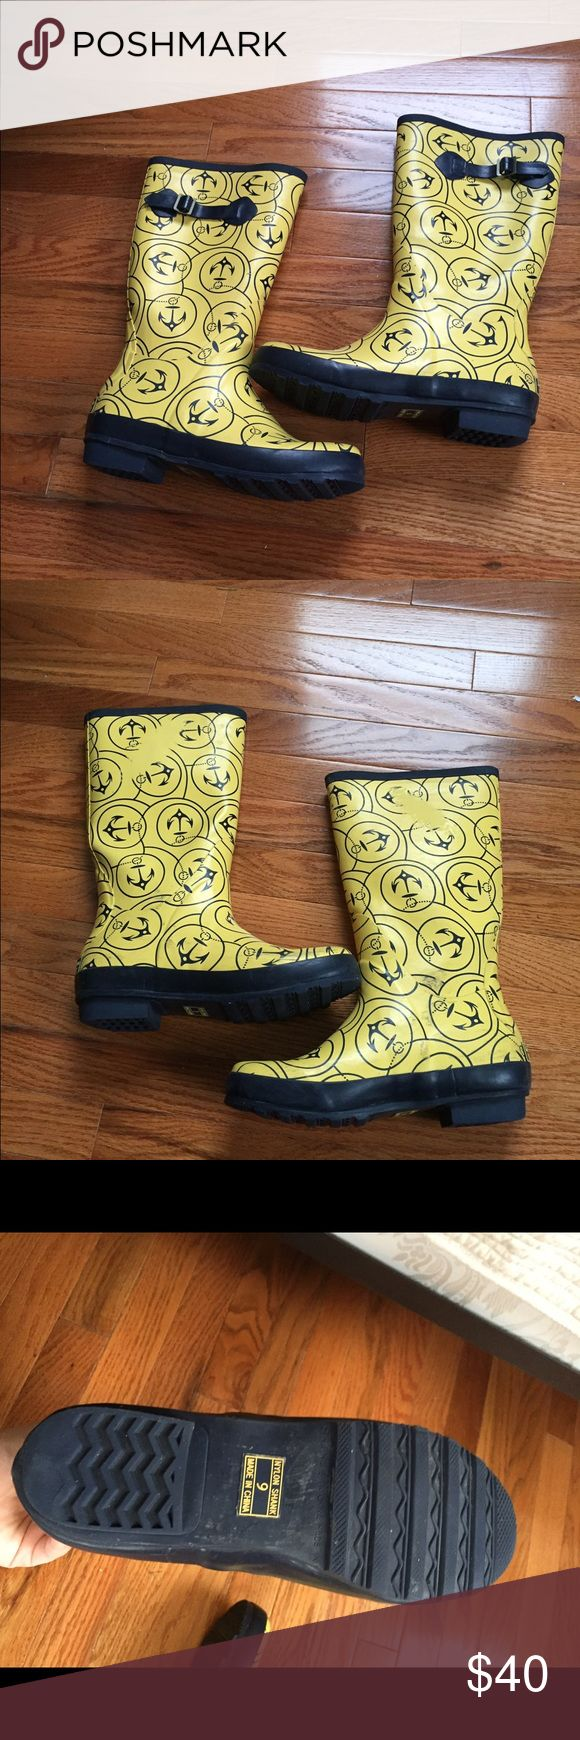 LL Bean Yellow and Navy Nautical Rainboots LL Bean Yellow and Navy Nautical Rainboots. Small part with pattern worn off on inside. Good treads. Lifetime guarantee from LL Bean! L.L. Bean Shoes Winter & Rain Boots